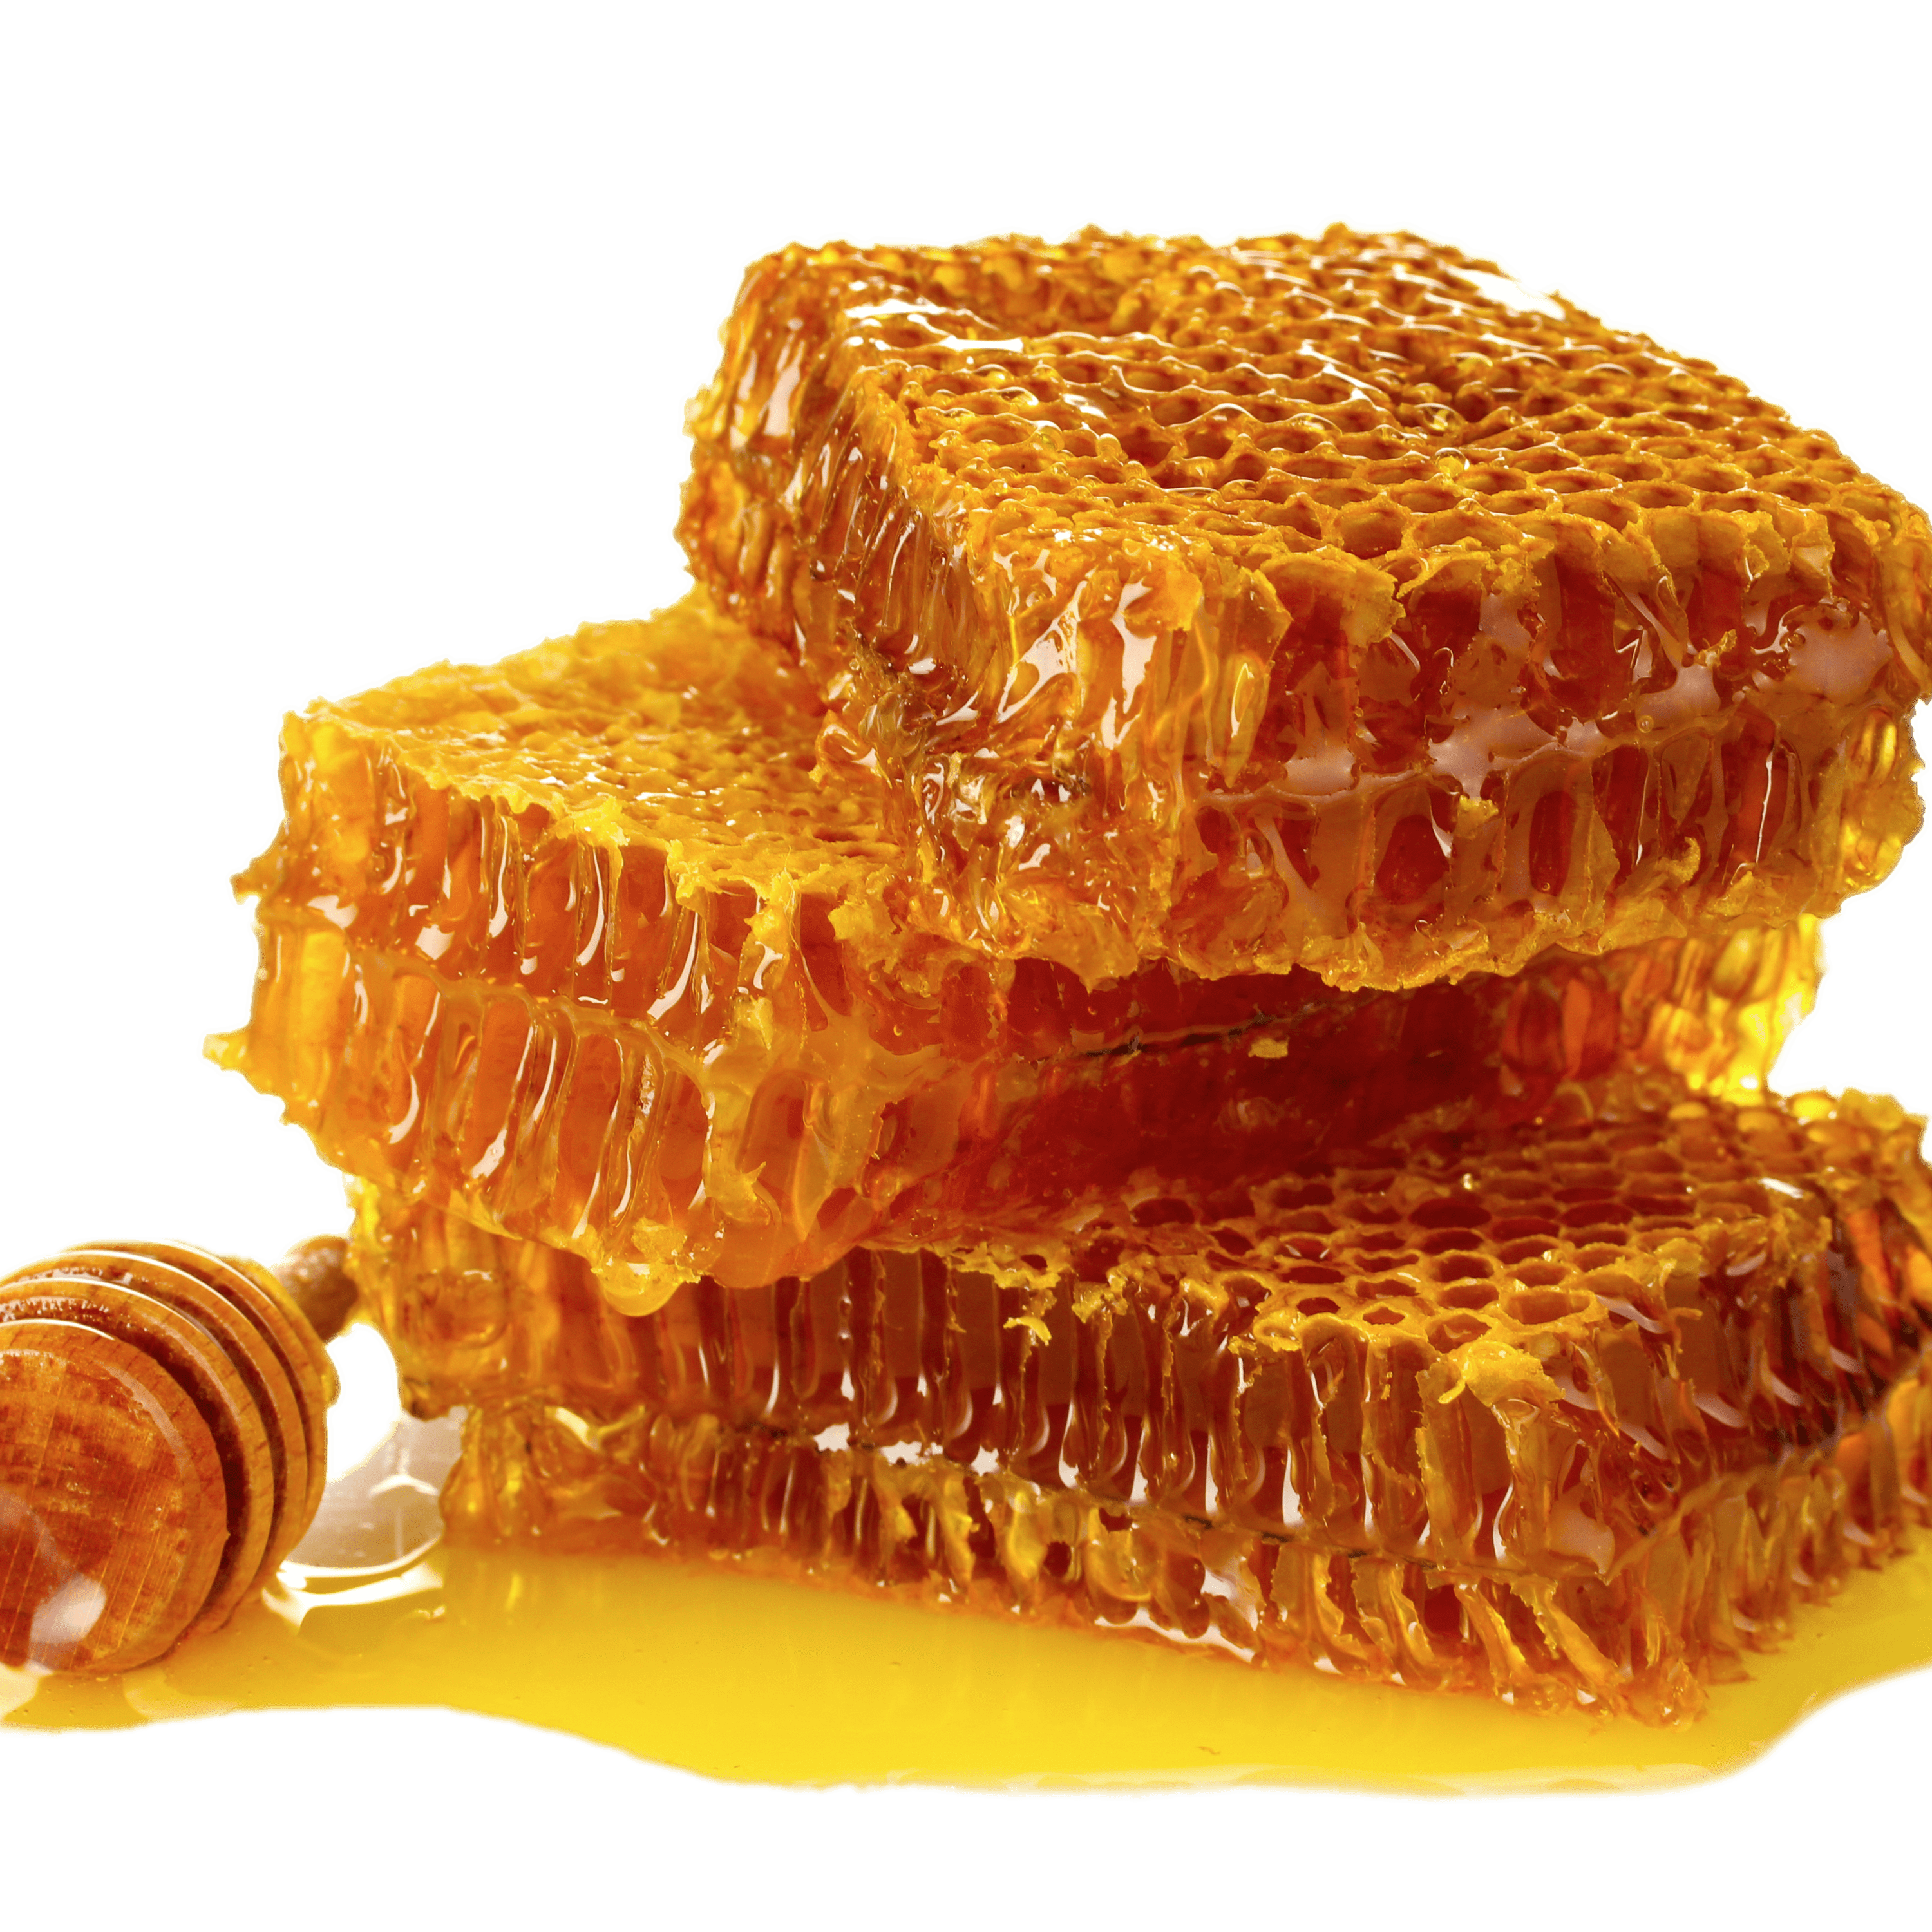 Honeycomb stick dripping png. Transparent stickpng with dipper